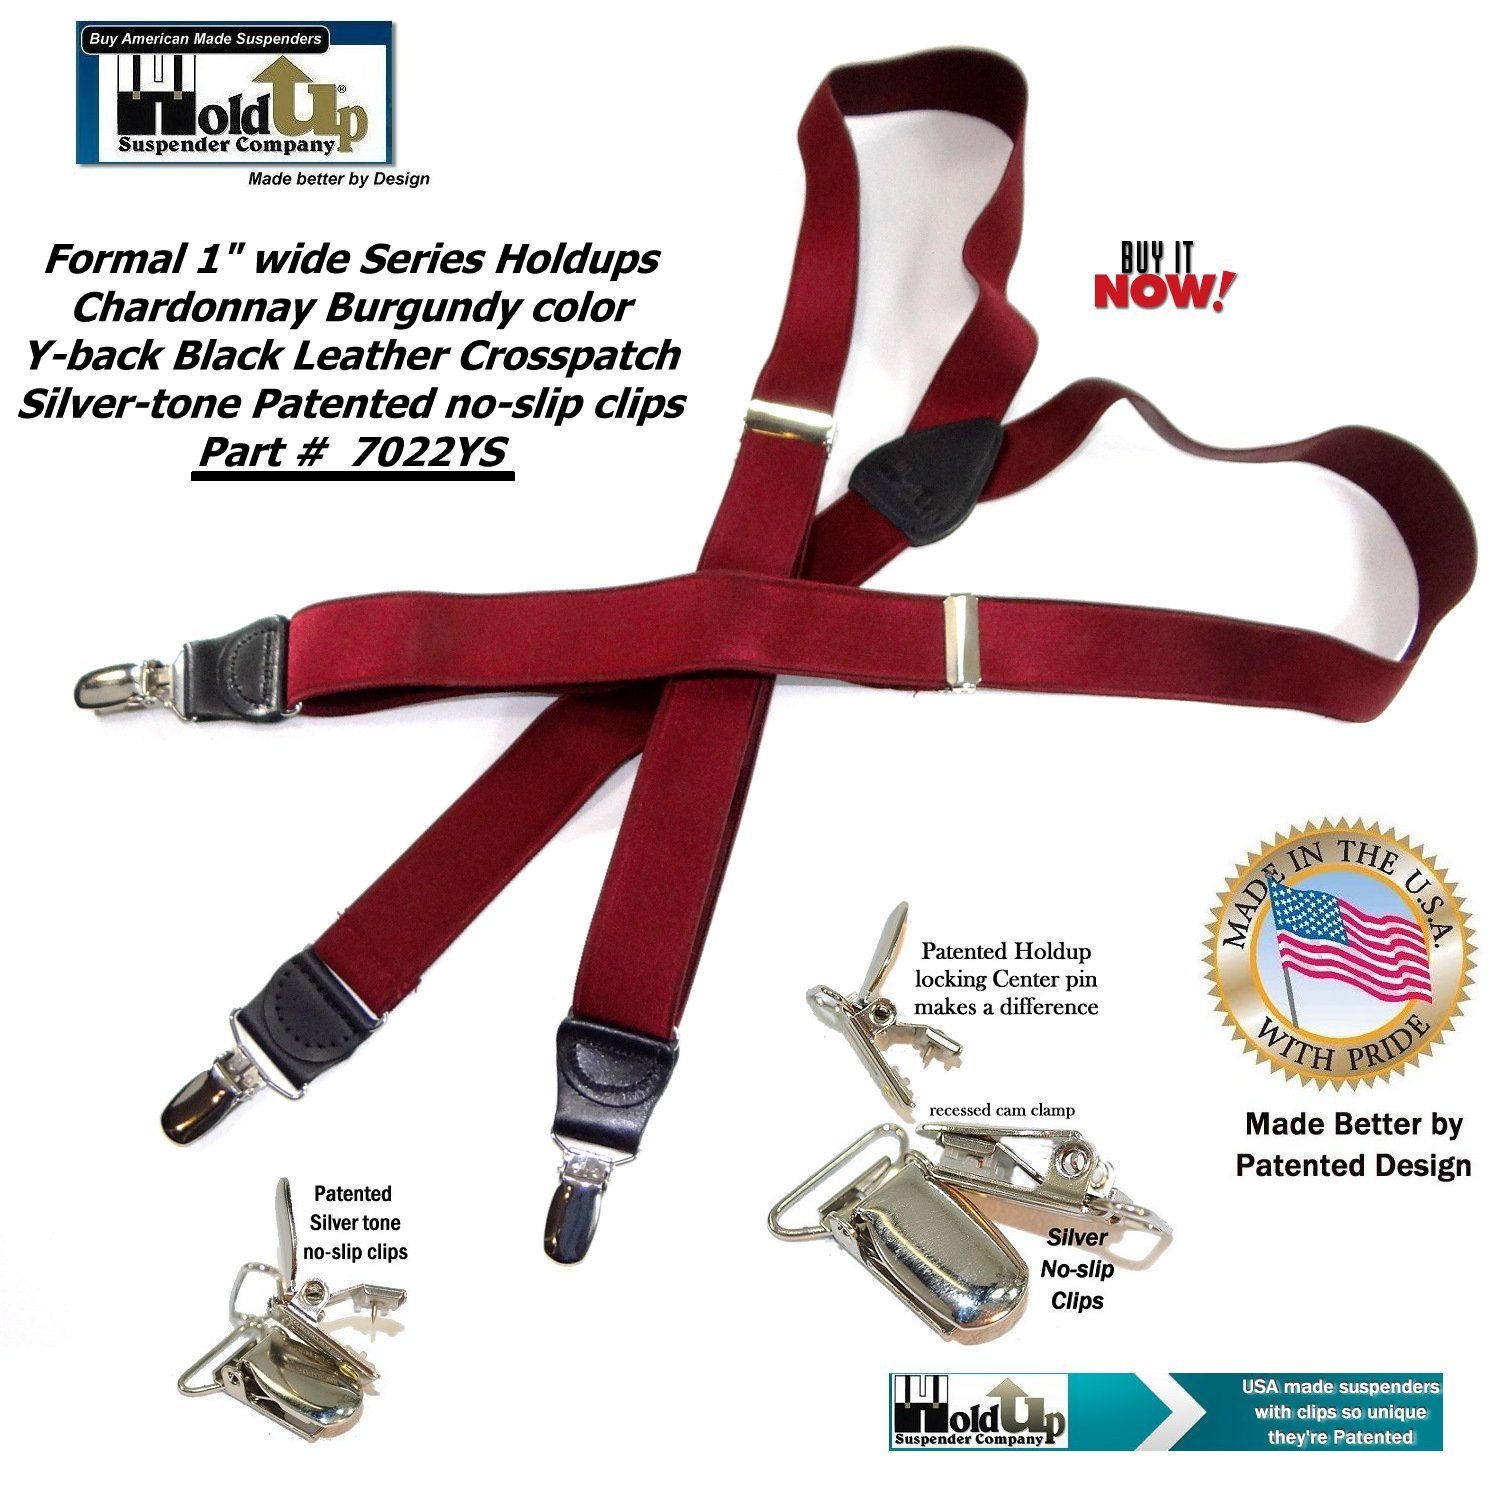 Holdup Suspender Companys Y-back Formal Series Chardonnay Burgundy Wine Colored Mens Suspenders with Silver No-Slip Clips